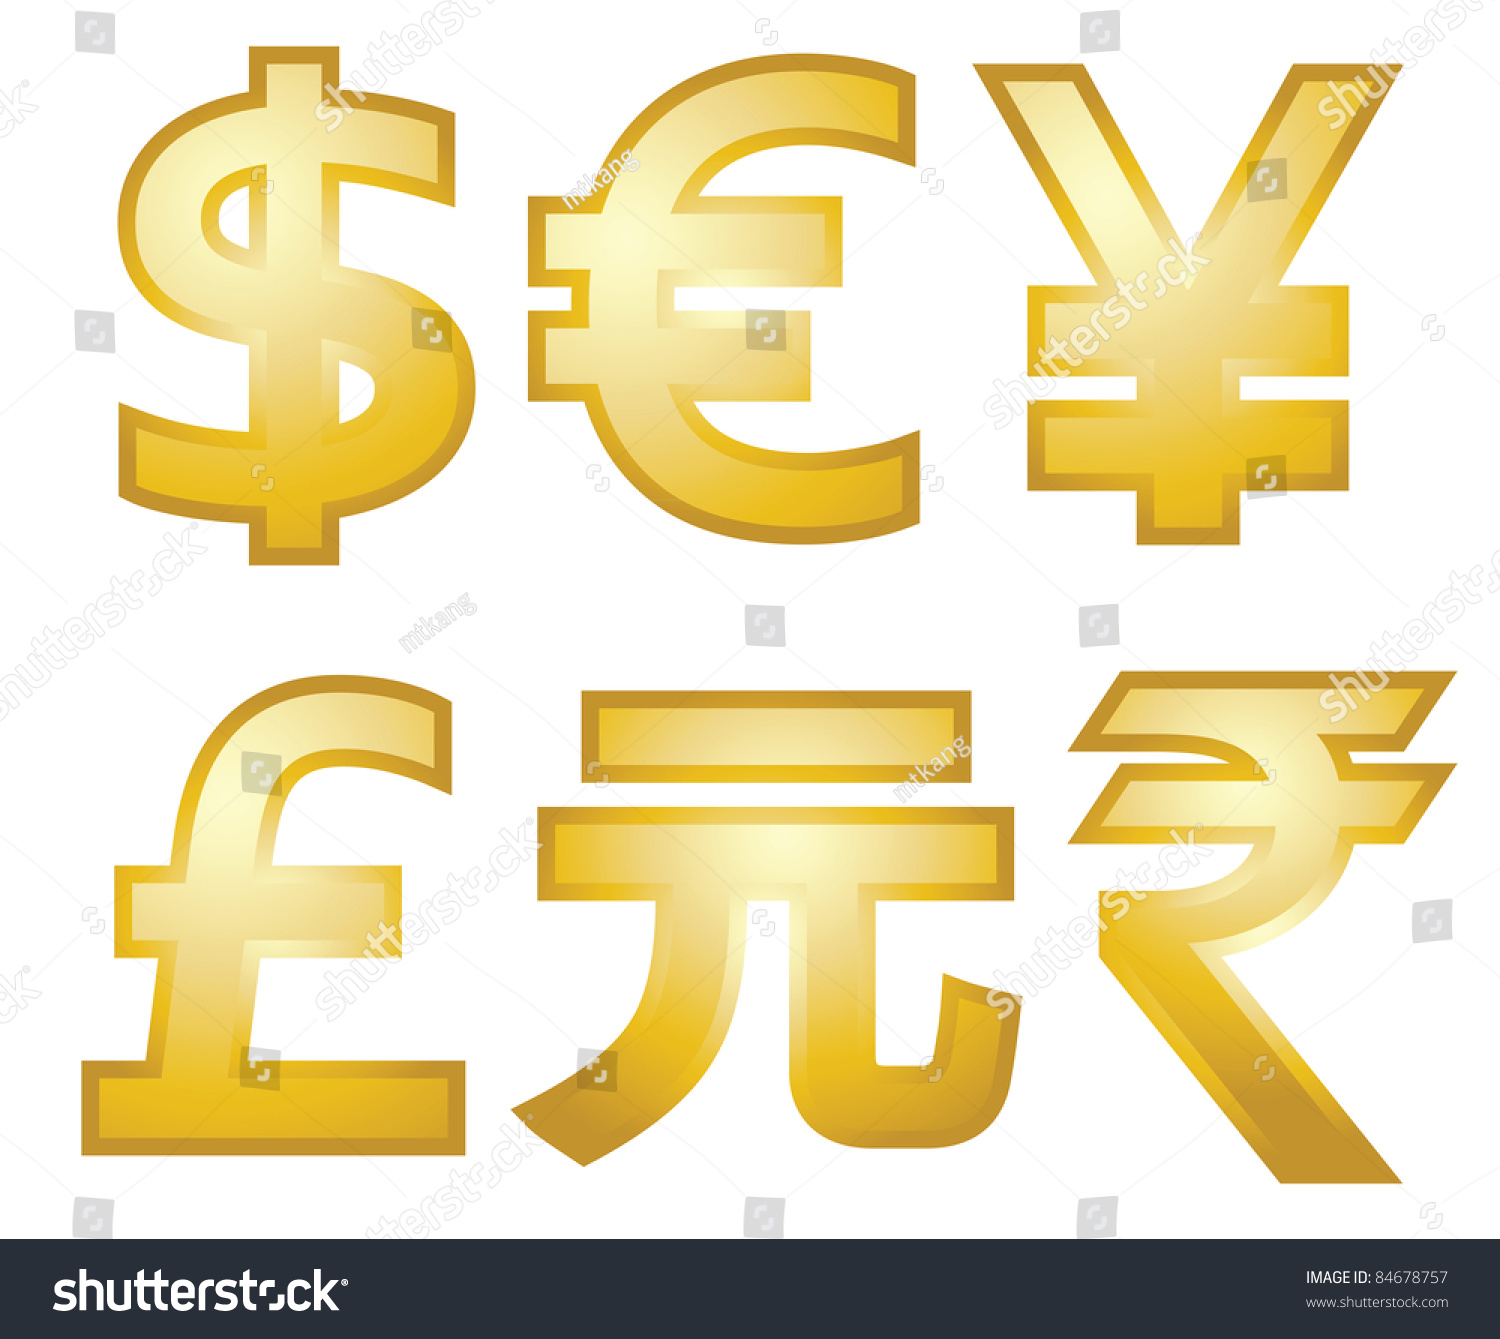 Currency converter symbols forgsm currency converter symbols biocorpaavc Gallery